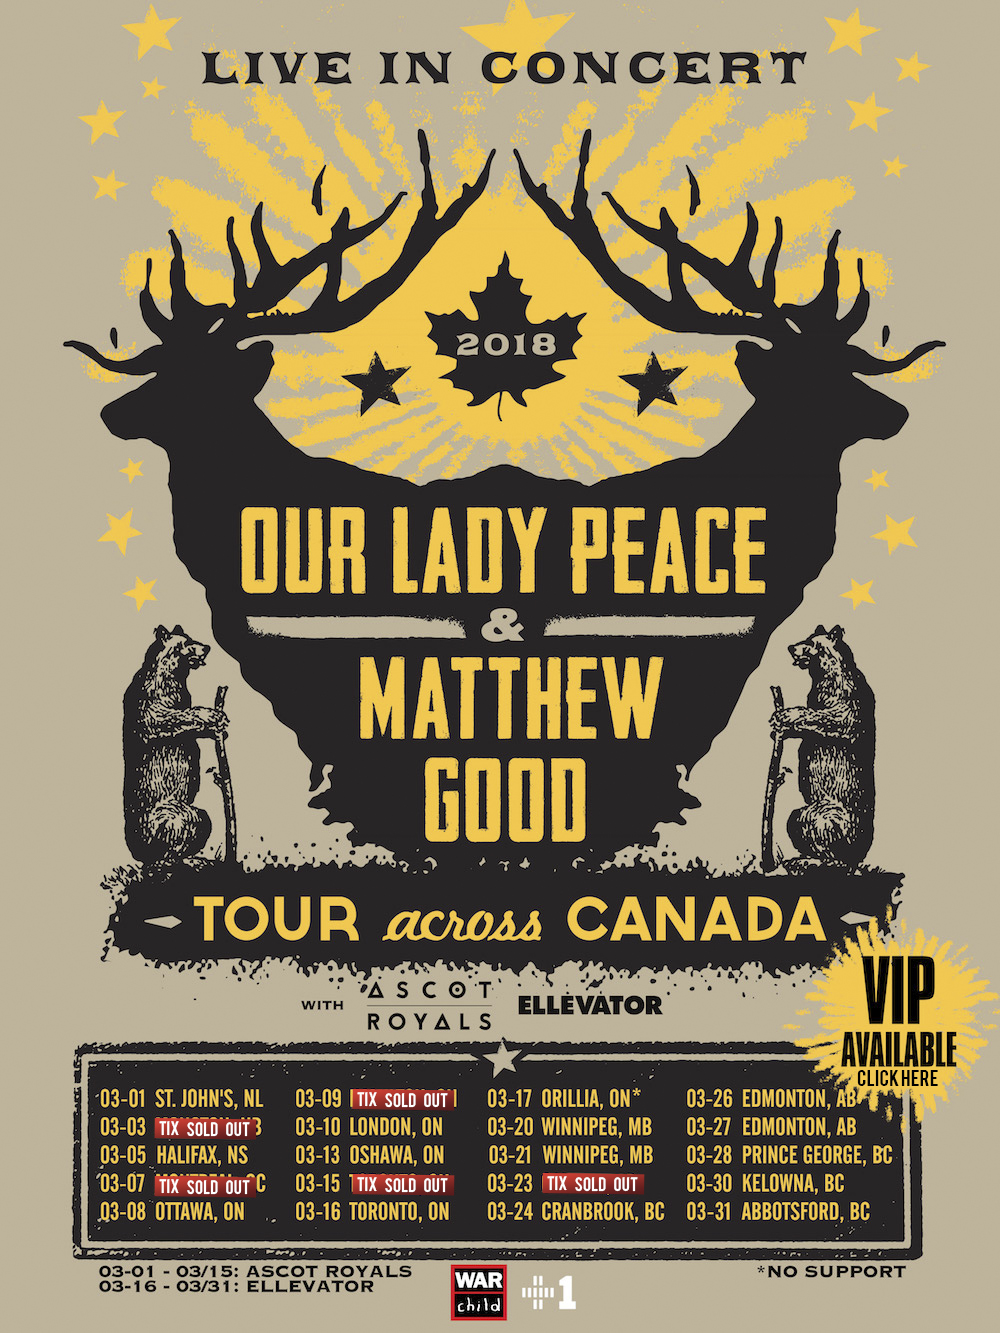 2018, Our Lady Peace, Cross Canada Concert Tour